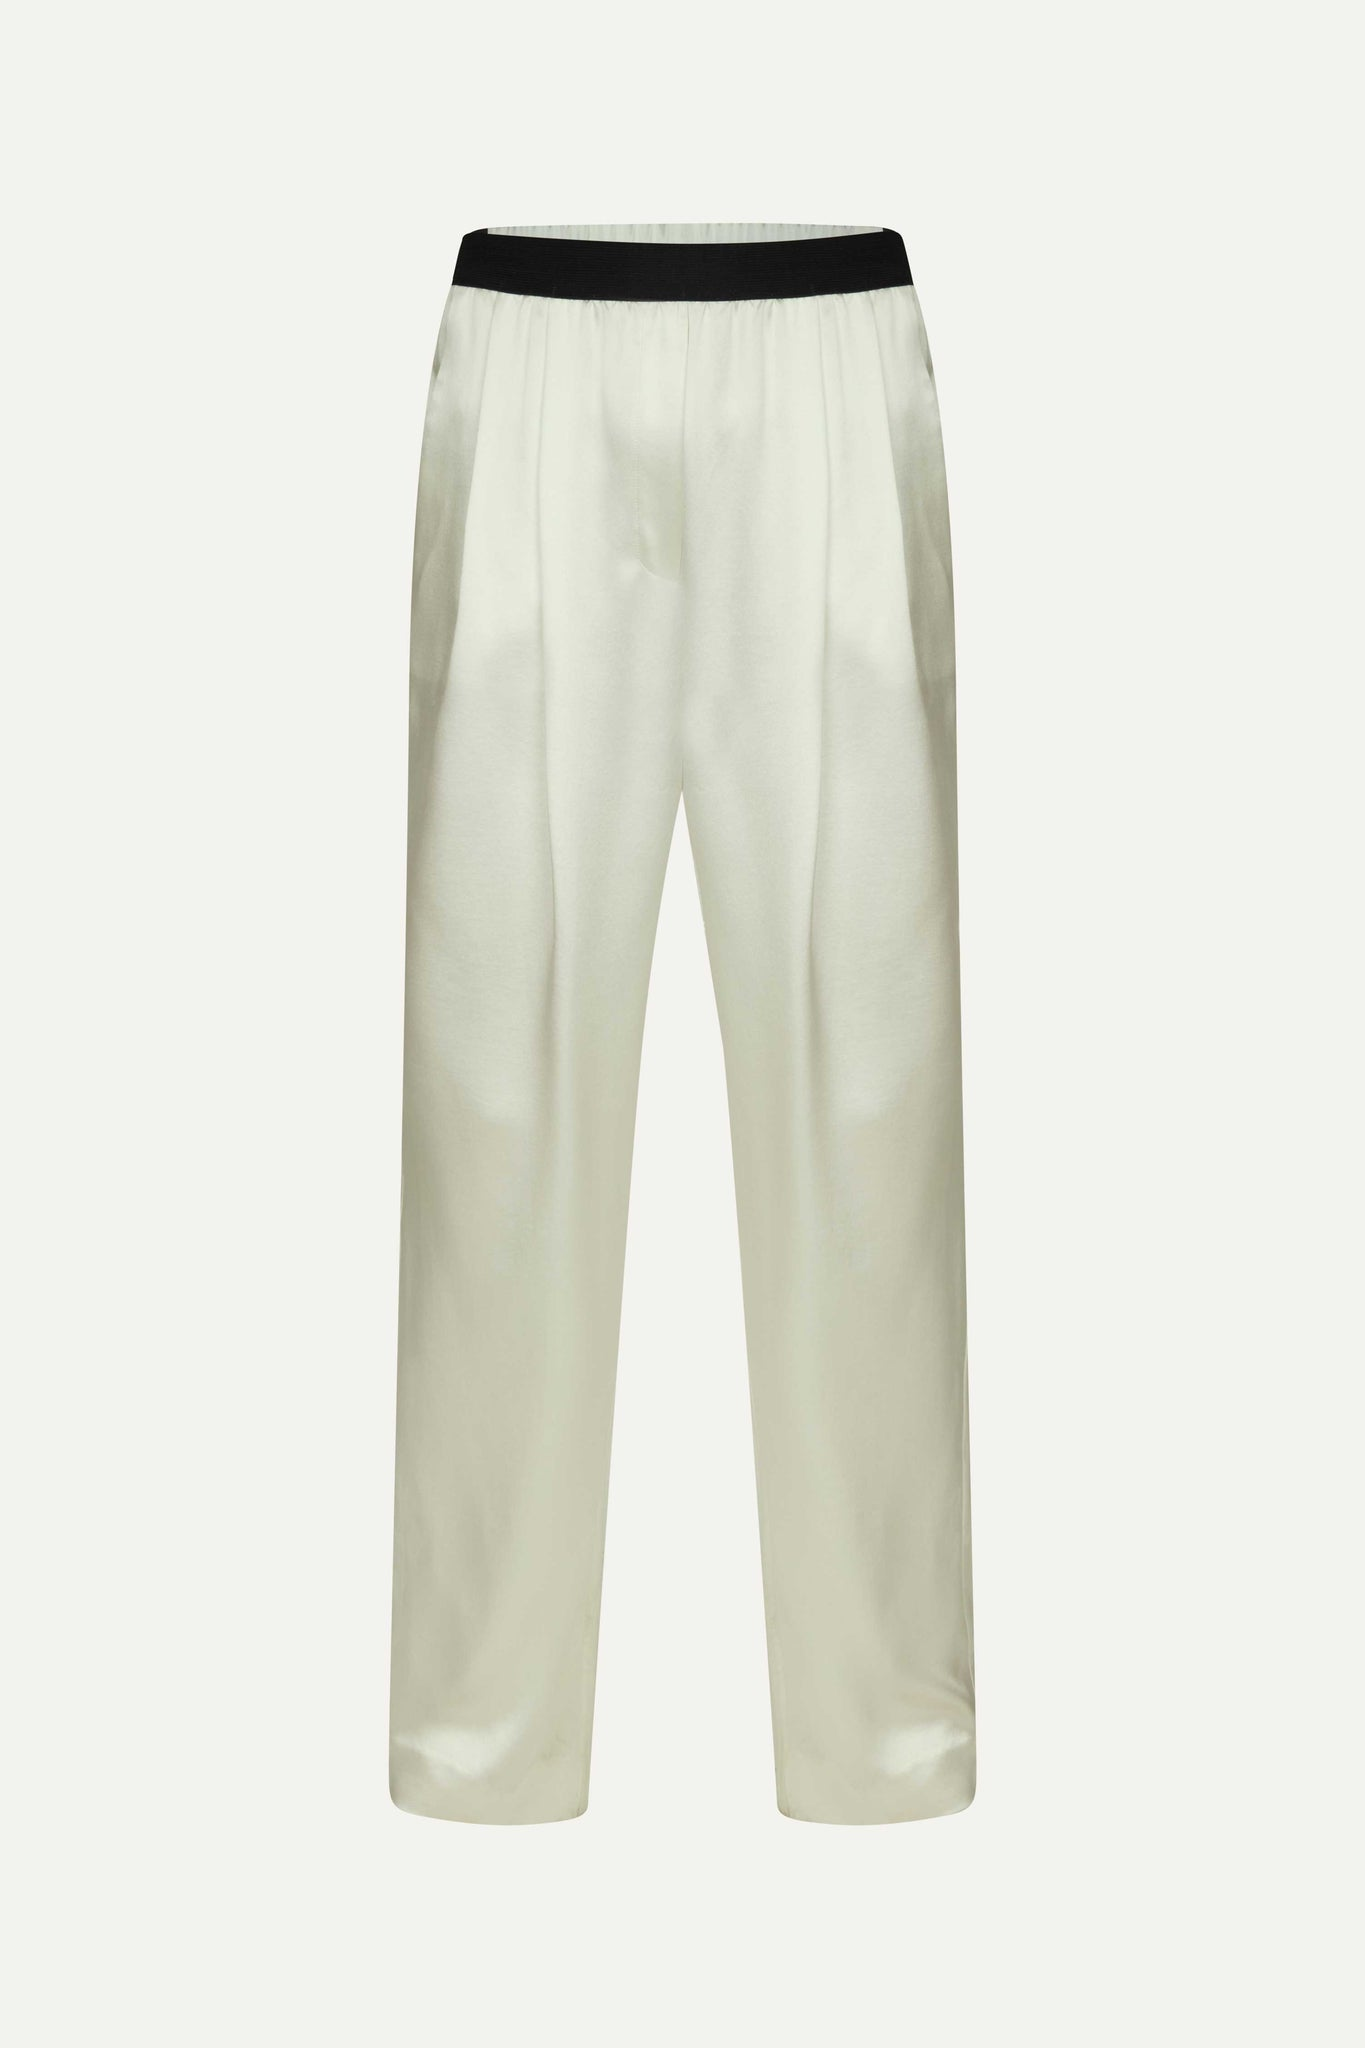 PAGAI ELASTIC PANTS BY LOULOU STUDIO IN IVORY